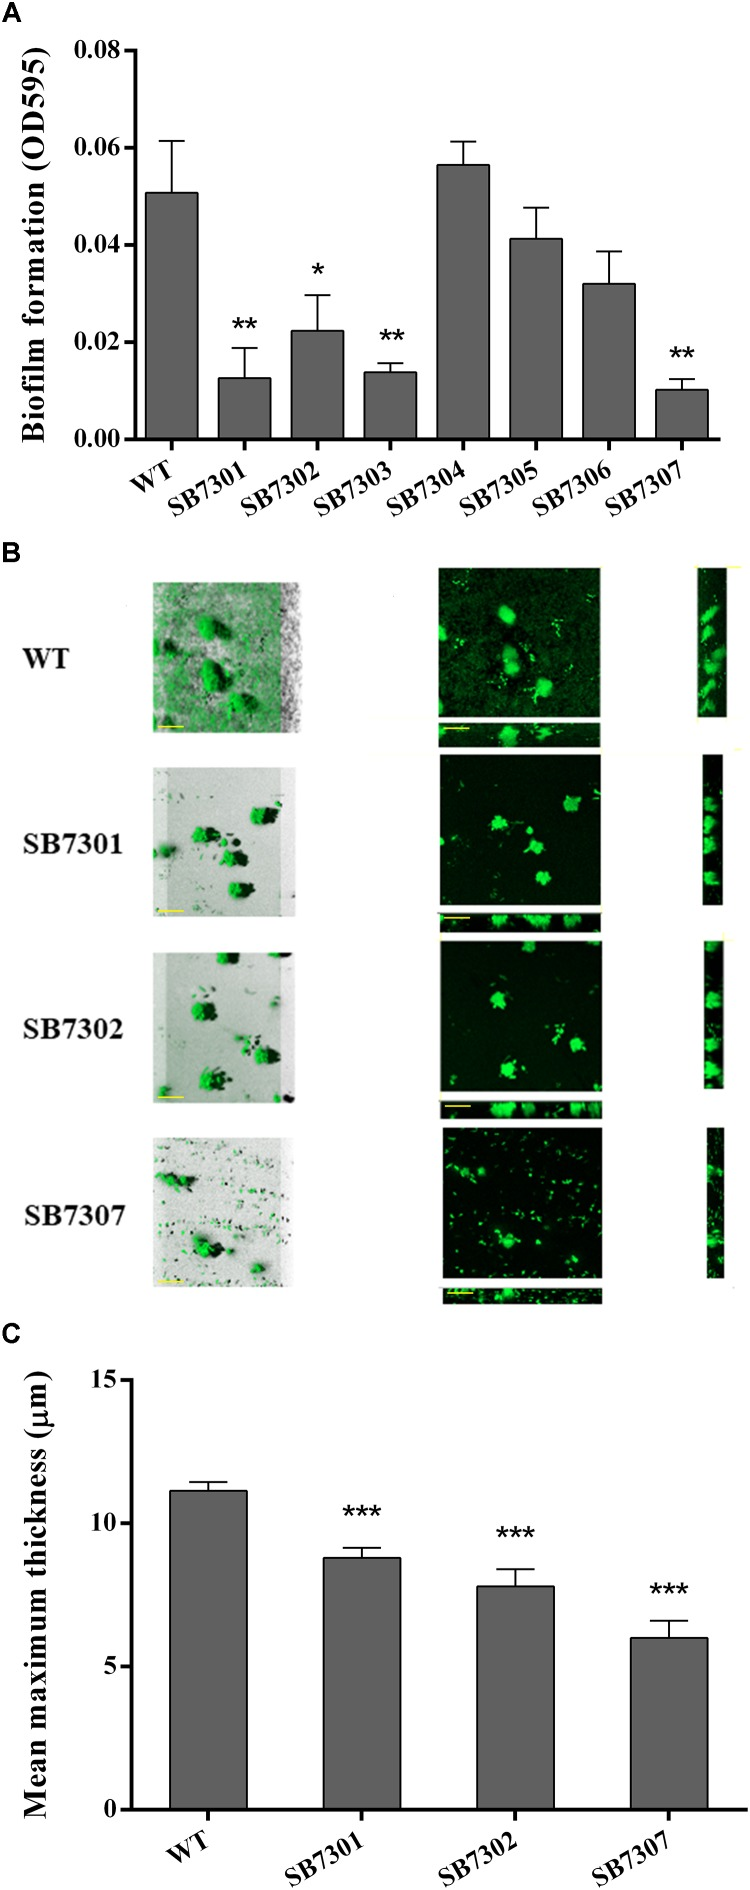 Biofilm formation activity of gene deletion mutants. (A) Biofilm formation of wild-type and each deletion mutant (SB7301, SB7302, SB7303, SB7304, SB7305, and SB7306) strains was quantified by microtiter plate assay. (B) Biofilm formation of wild-type, SB7301 and SB7302 mutant strains was analyzed by CLSM imaging in blend mode view (left panel) and section mode view (right panel). The scale bars represent 50 μm. (C) The mean maximum thickness of biofilms obtained from CLSM imaging. Data was presented as the mean ± standard deviation ( n = 3, ∗ p